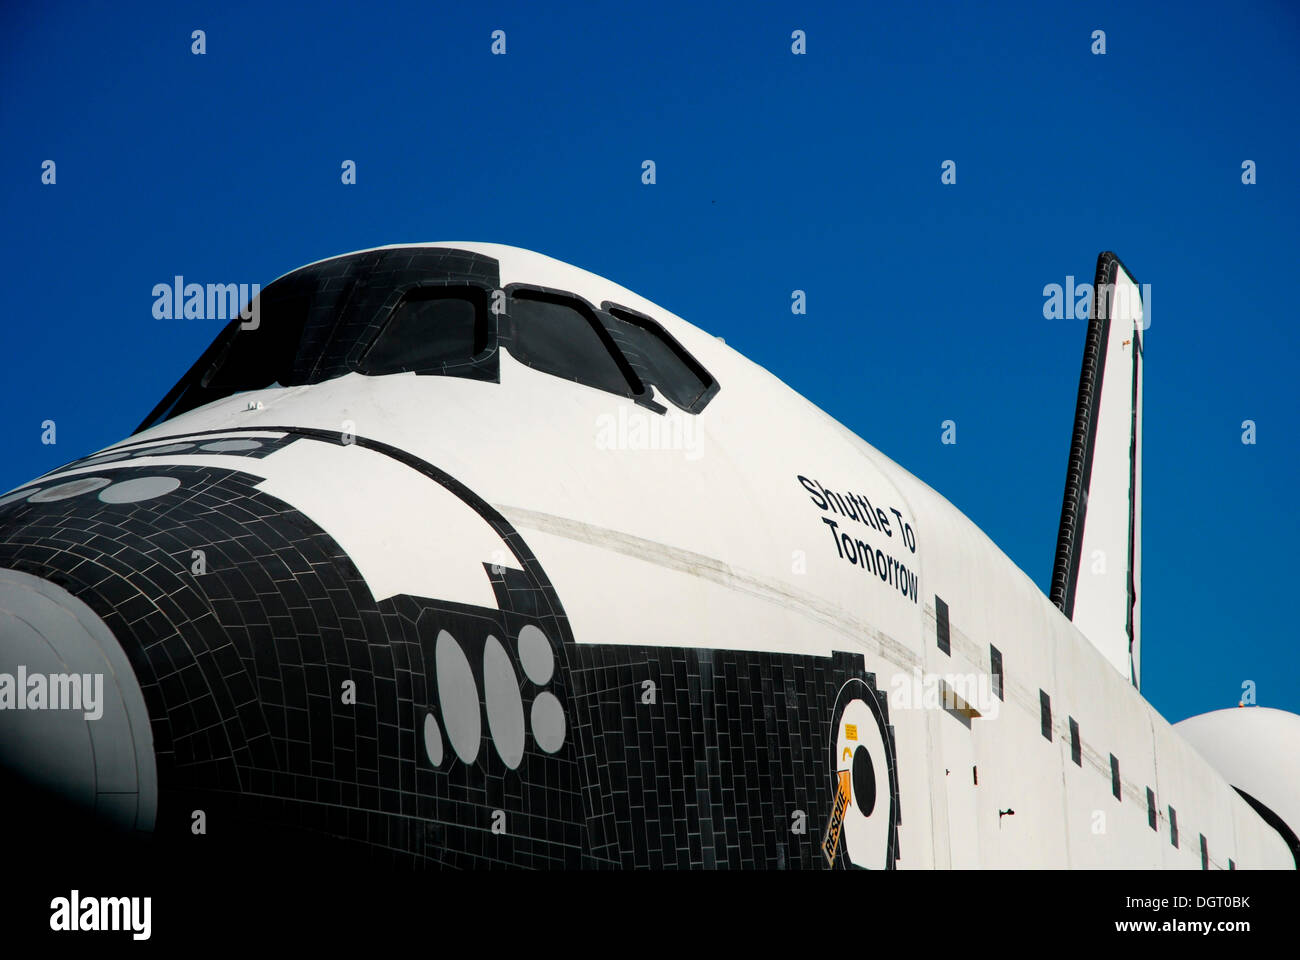 Shuttle to Tomorrow, at the John F. Kennedy Space Center in Cape Canaveral, Florida, USA - Stock Image